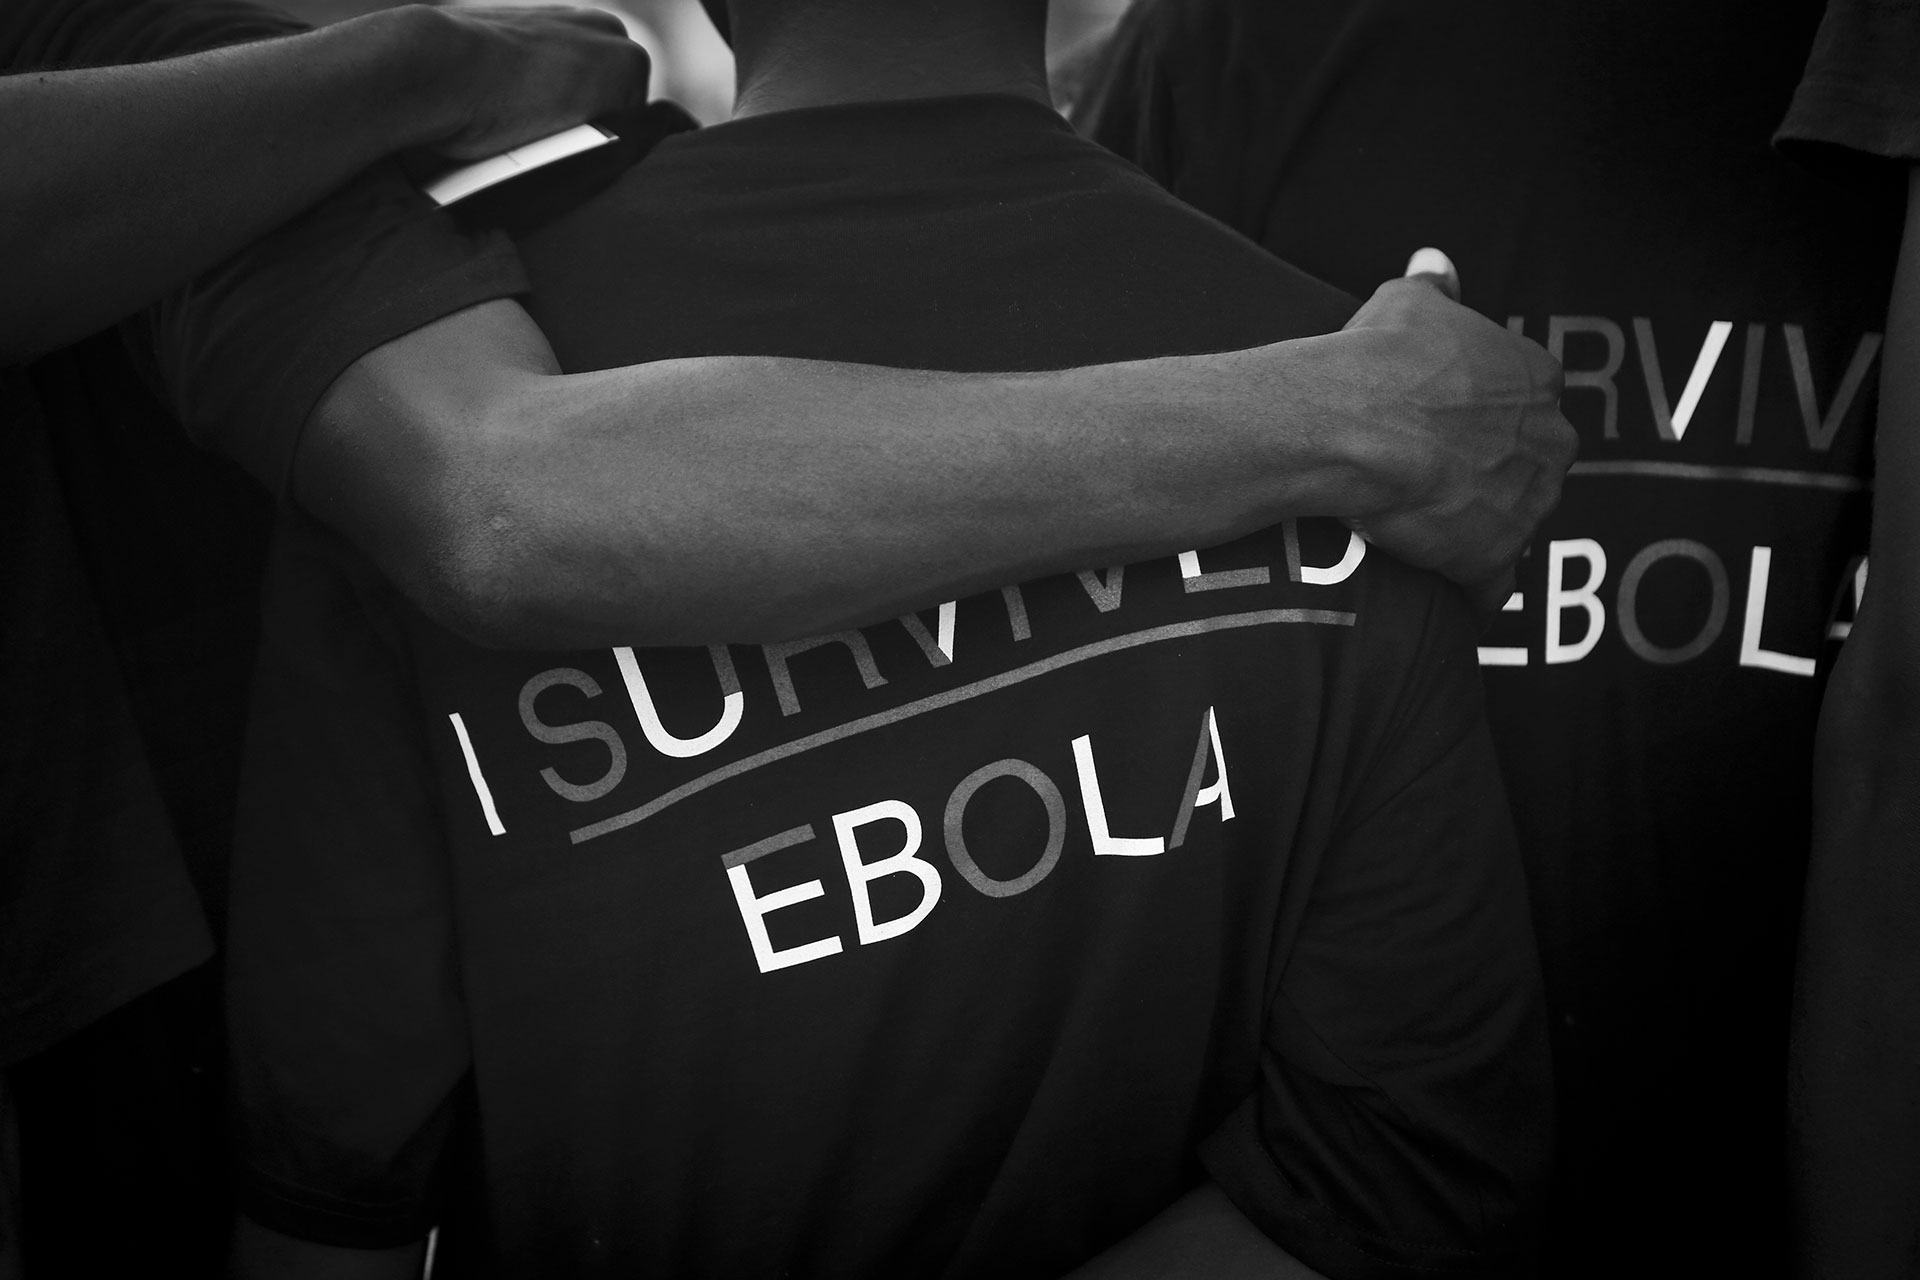 Men who are part of the Ebola Survivor's Soccer Club wear t-shirts at a soccer practice in the city of Kenema, 190 miles east of the capital Freetown, Sierra Leone, Tuesday, April 21, 2015. In 2014, 38 members of Erison Turay's family died from the deadly Ebola virus, which has killed over 11,000 across West Africa. Erison founded the Ebola Survivor's Soccer Club as a support network for survivors and a means to battle negative stigmas in the community.